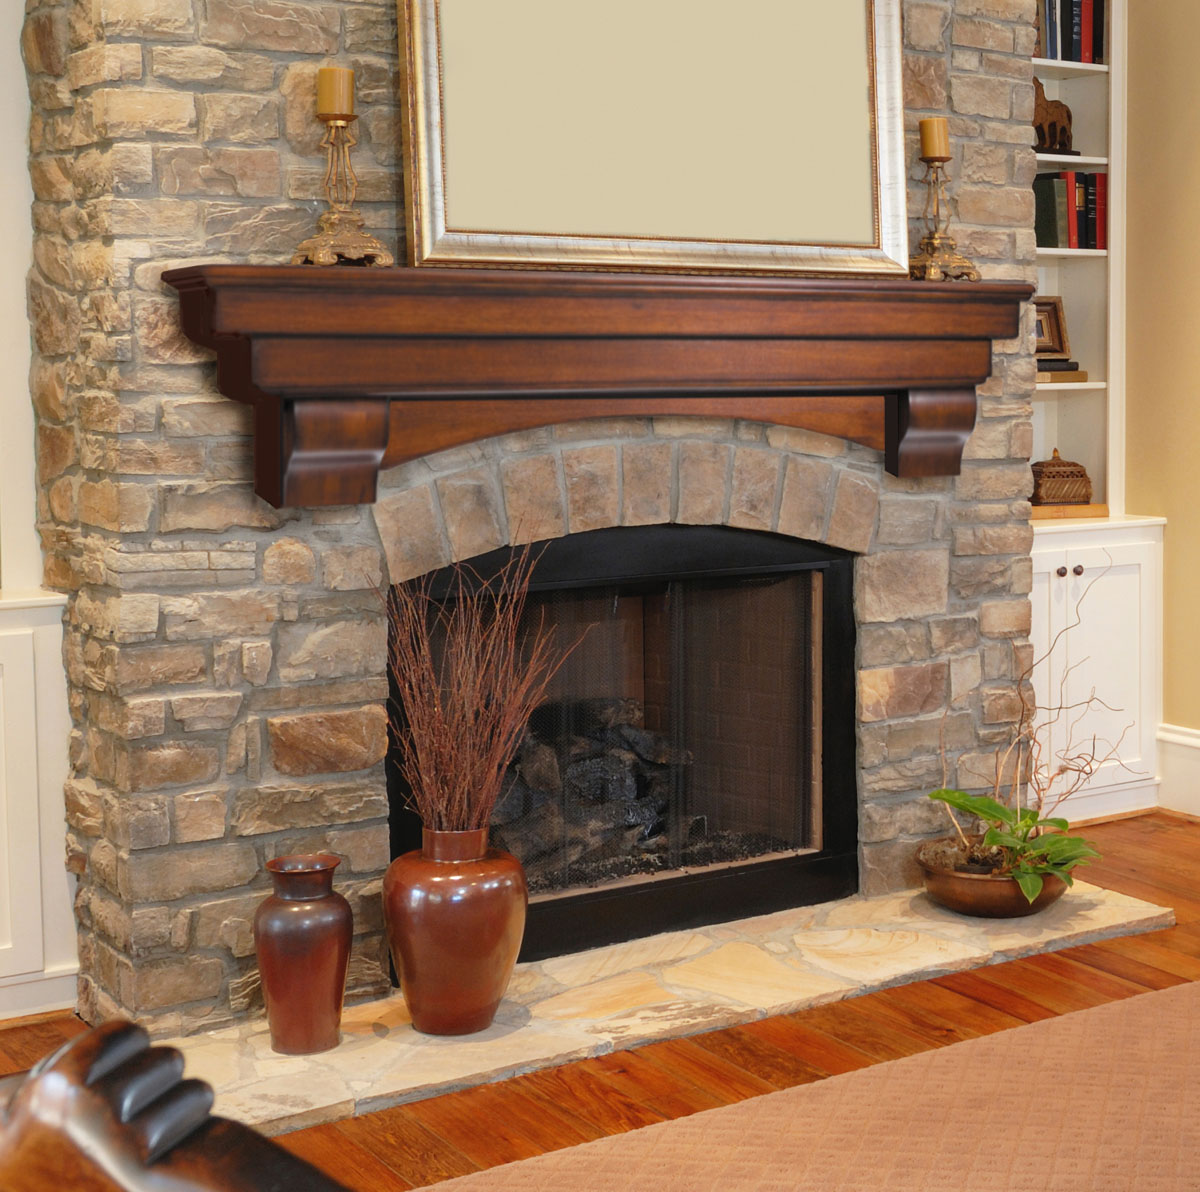 marble-fireplace-surround-ideas-photo-14